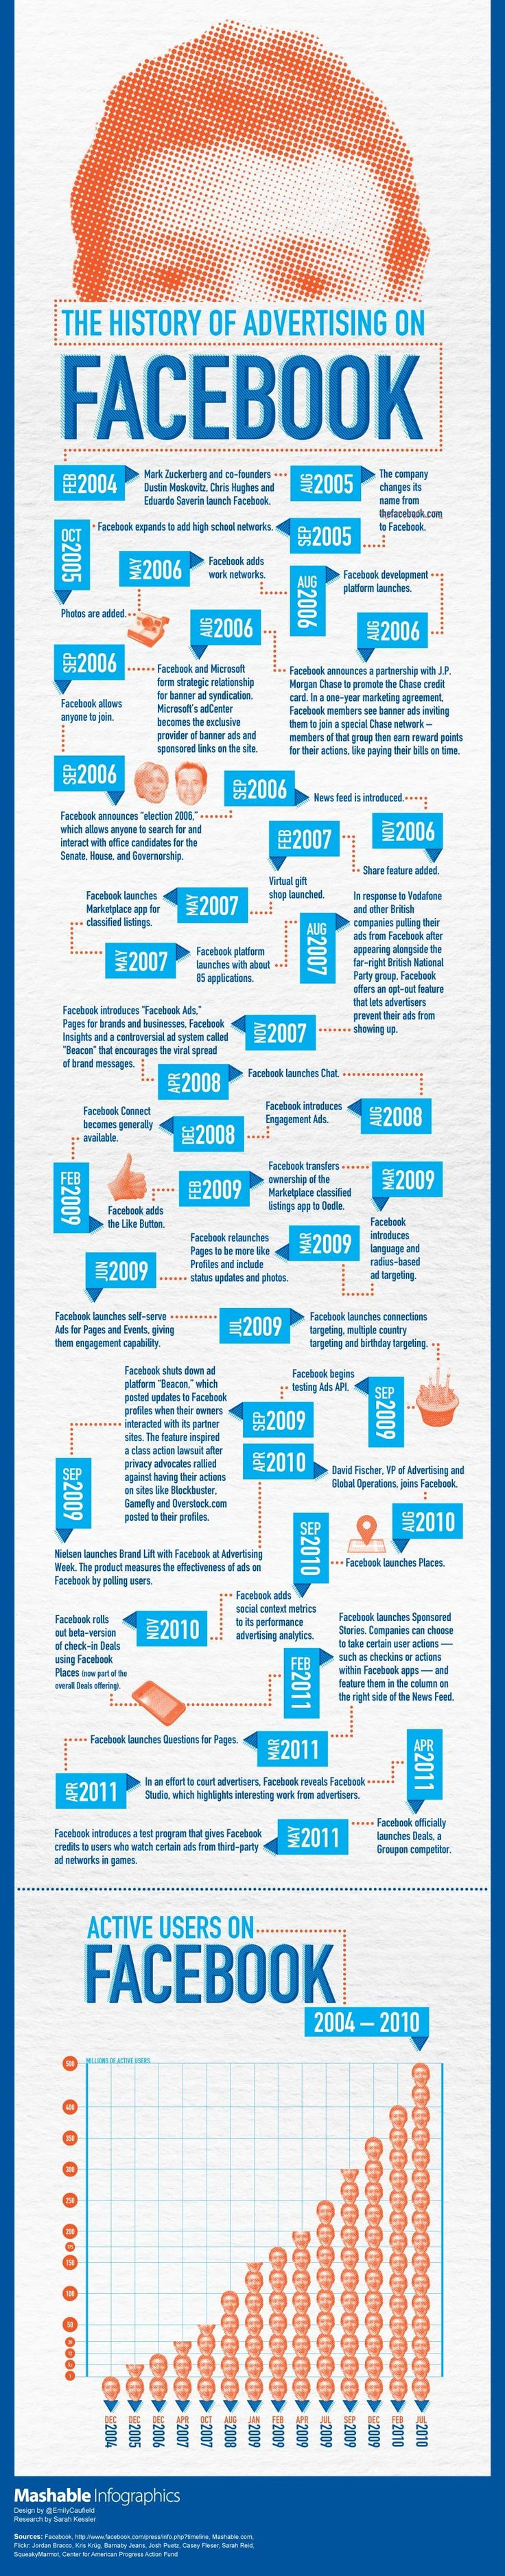 history of advertising on facebook